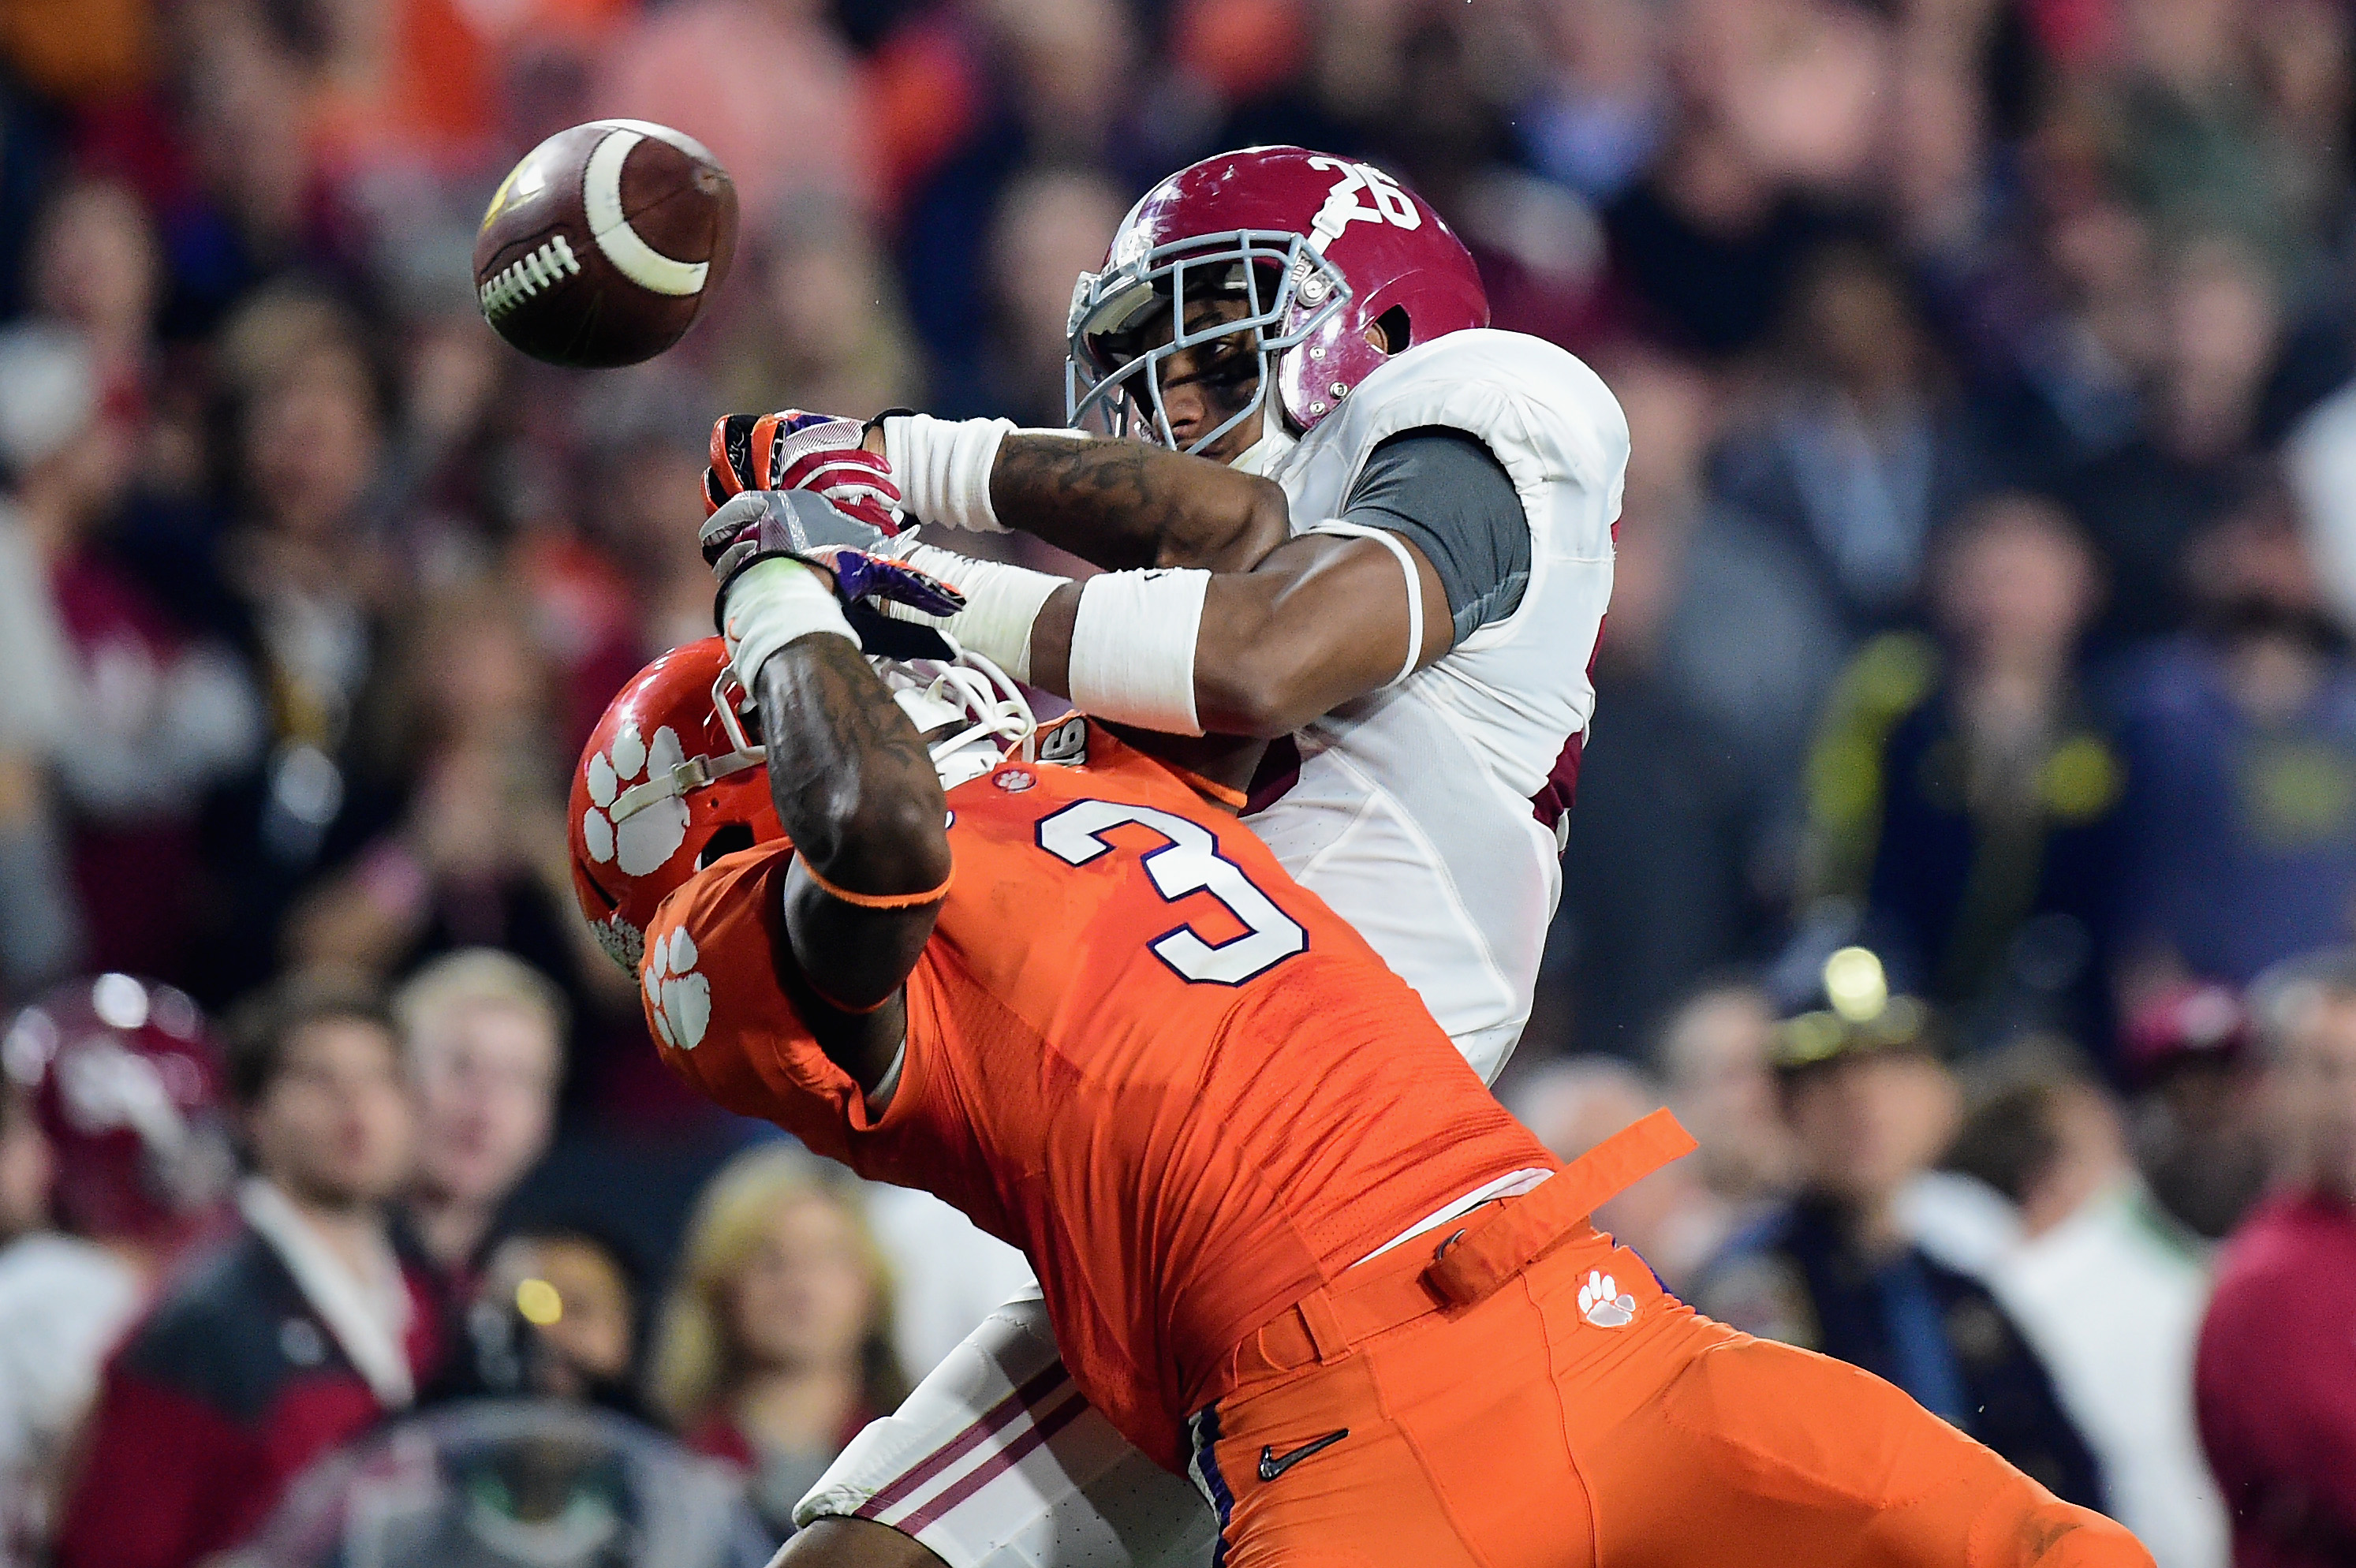 Marlon Humphrey of Alabama breaks up a pass for Clemson's Artavis Scott in the 2016 National Championship Game. (Photo by Harry How/Getty Images)